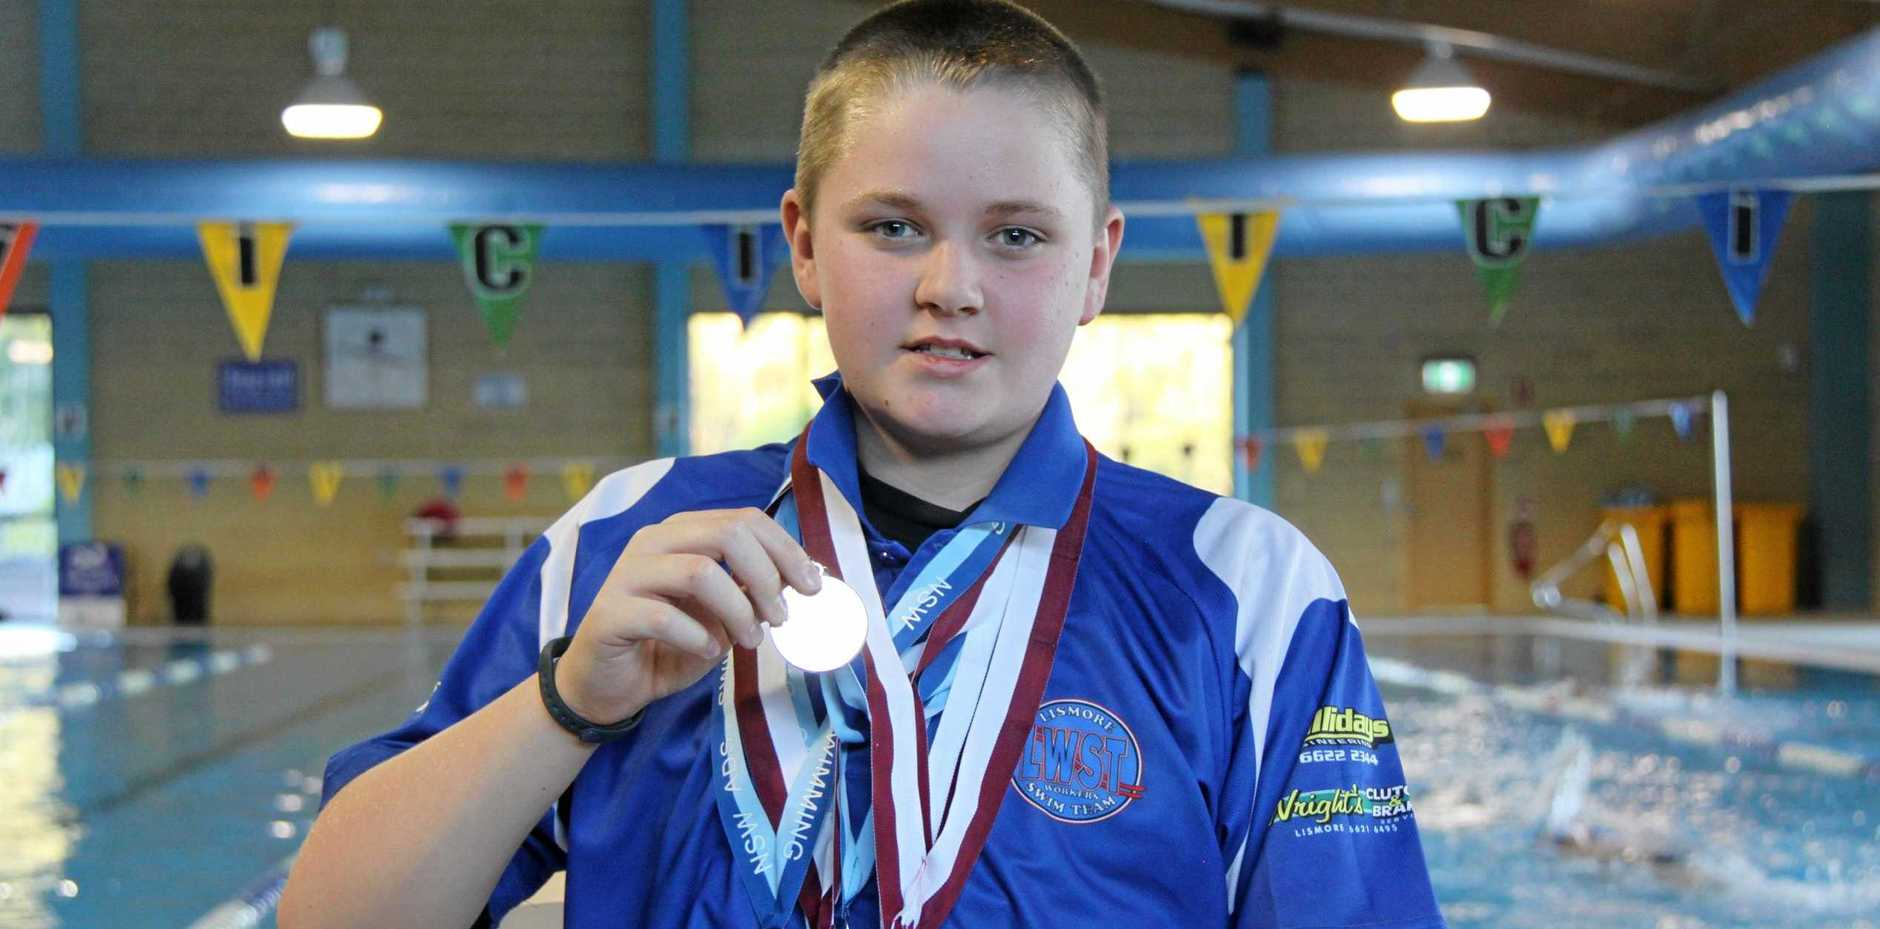 FISTFUL OF MEDALS: Lismore Workers Swim Team member Ben Auckram, 15, claimed five gold medals at the 2019 NSW multi-class state titles in Sydney.